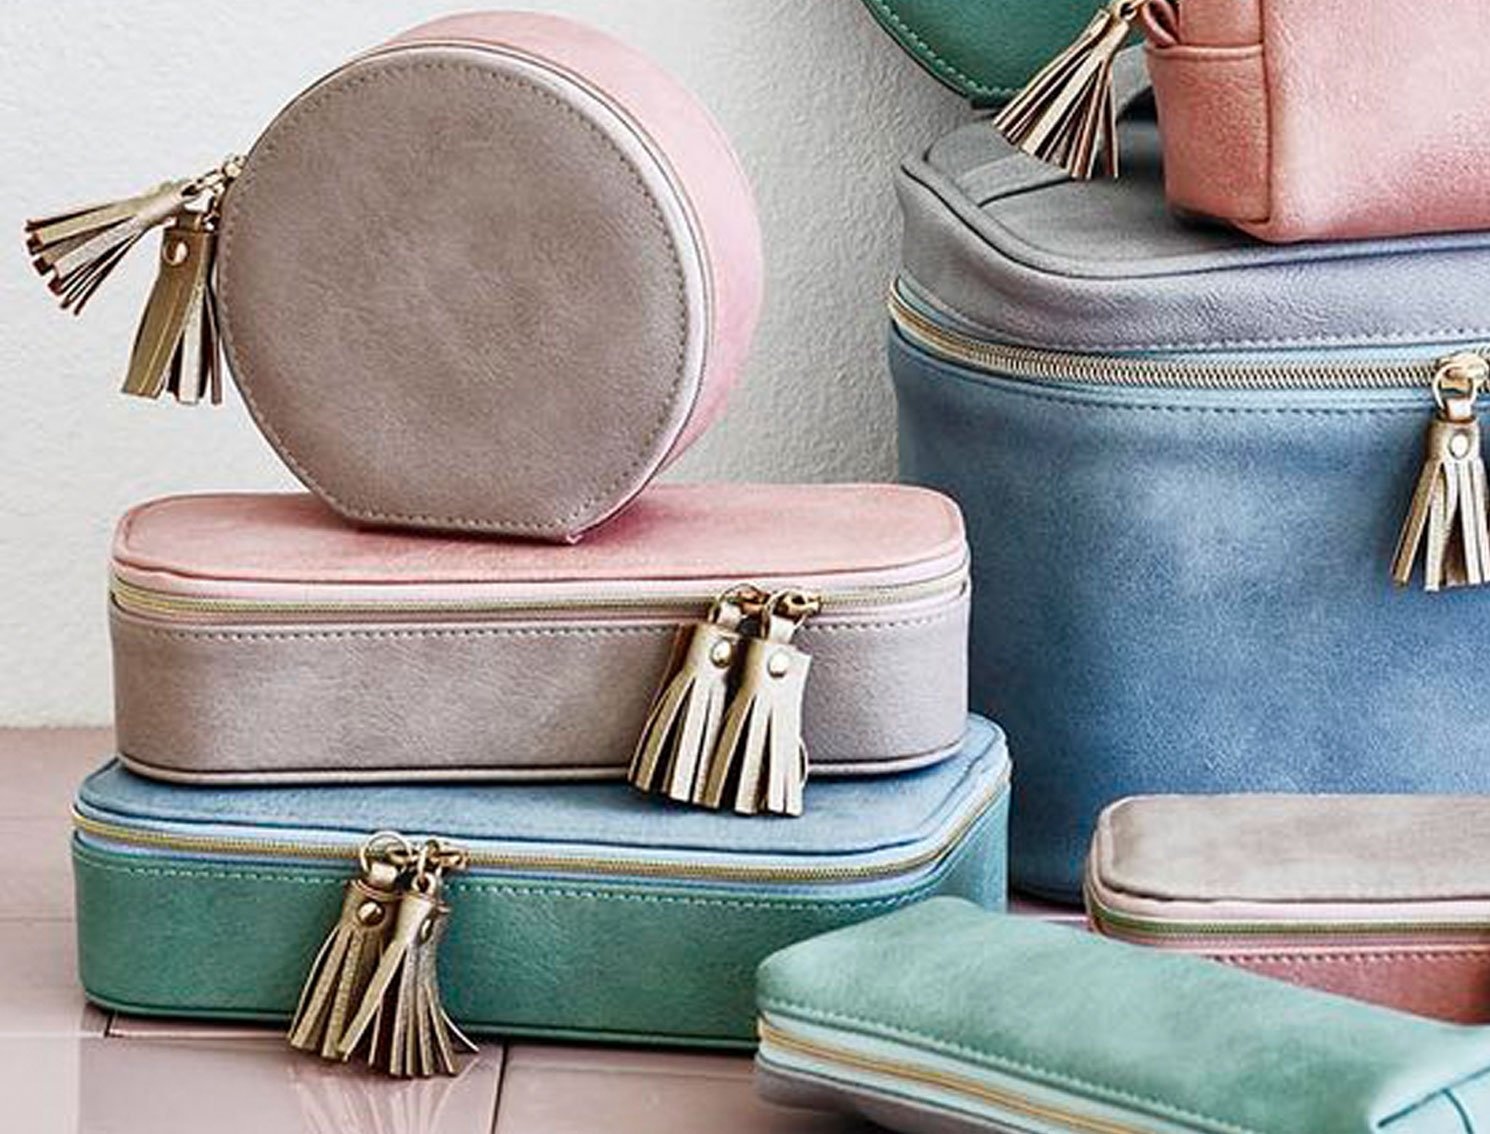 7 Jewellery box essentials every woman should have